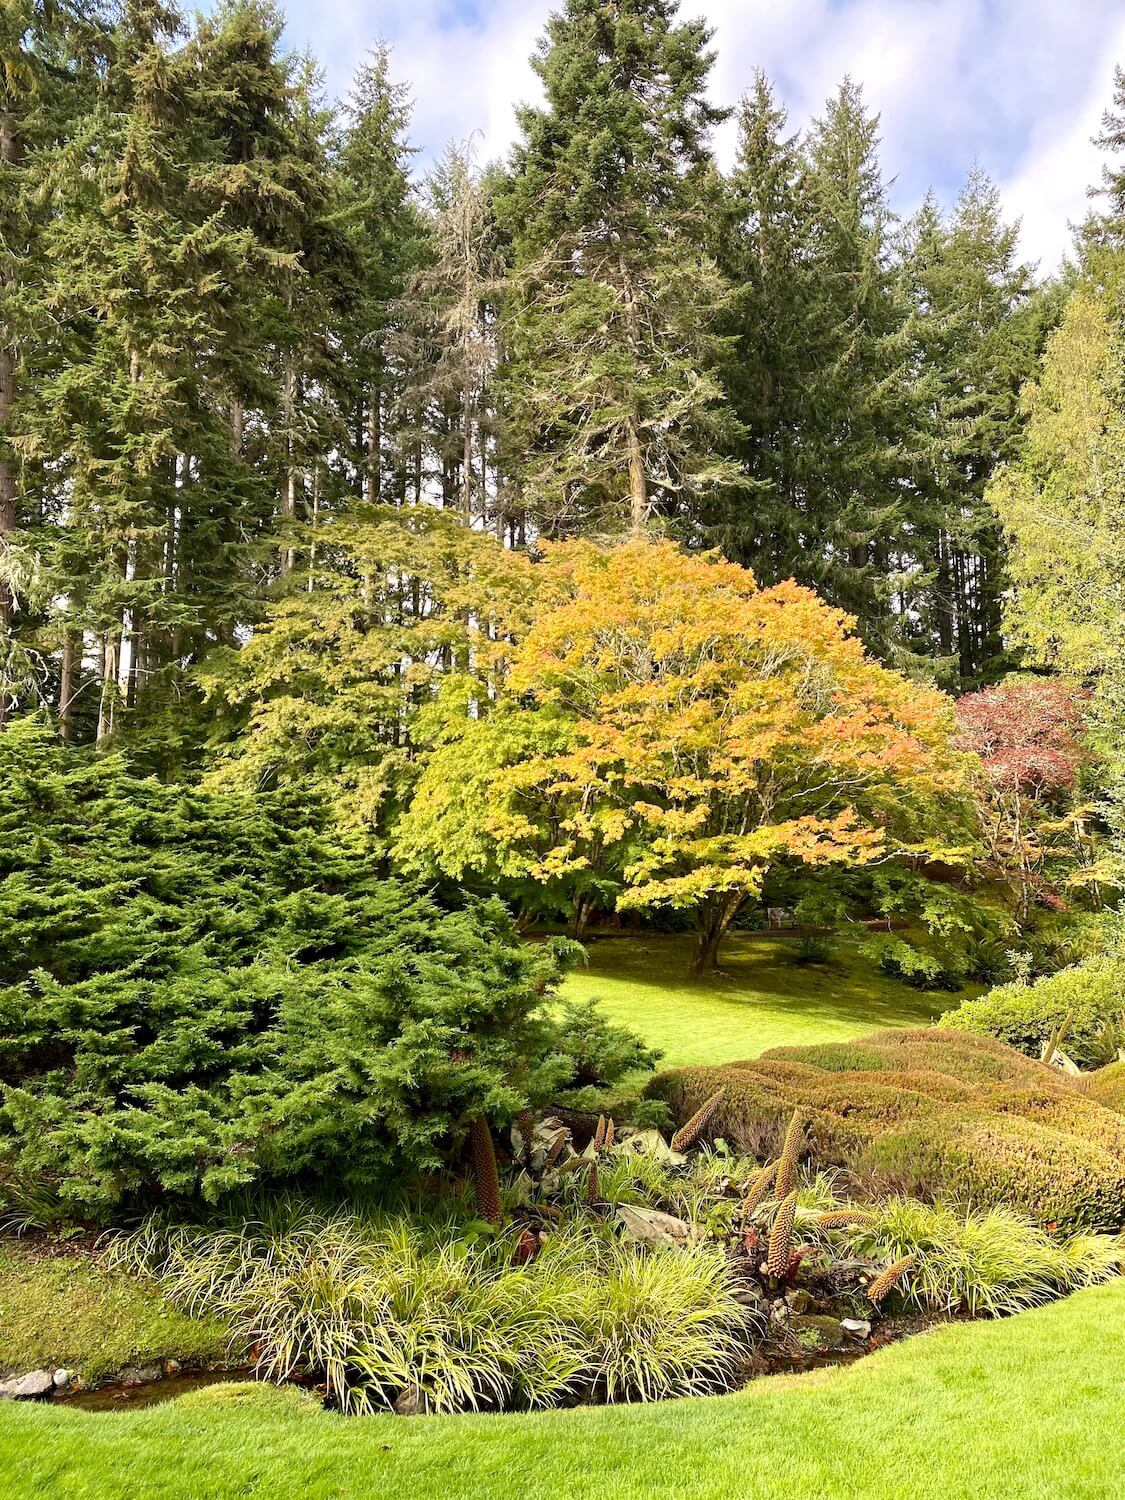 A collage of foliage follows a tiny brook amongst a green lawn and large fir trees in the backdrop under blue skies with patches of white clouds.